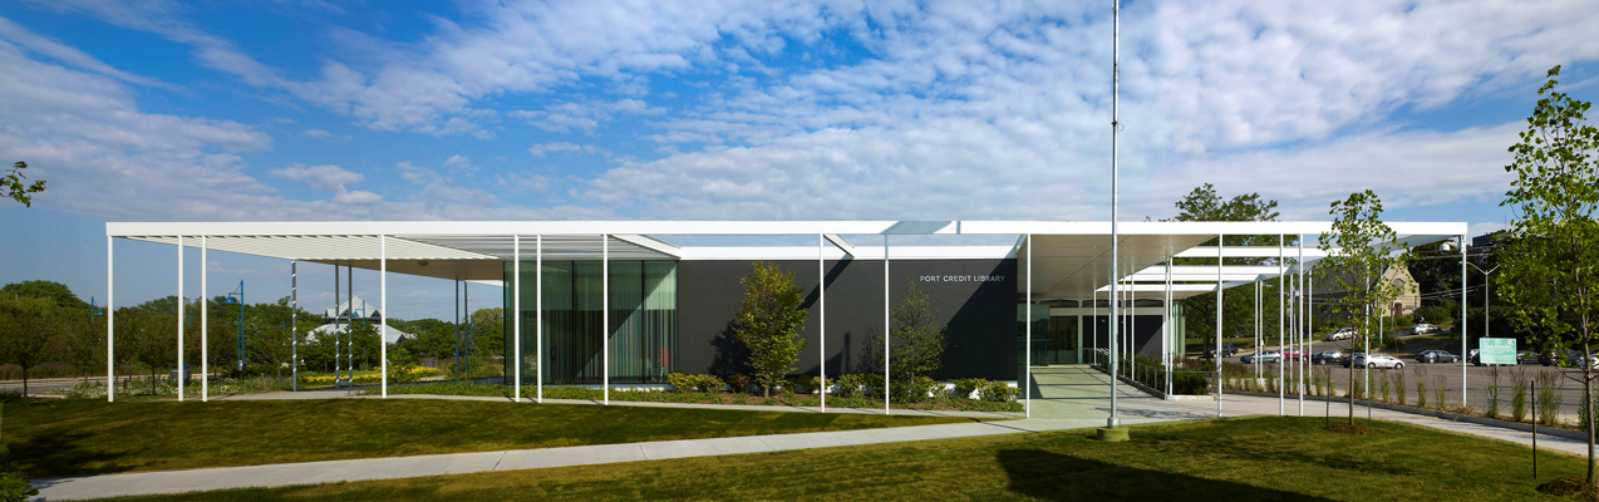 RDH Architects Port Credit Library